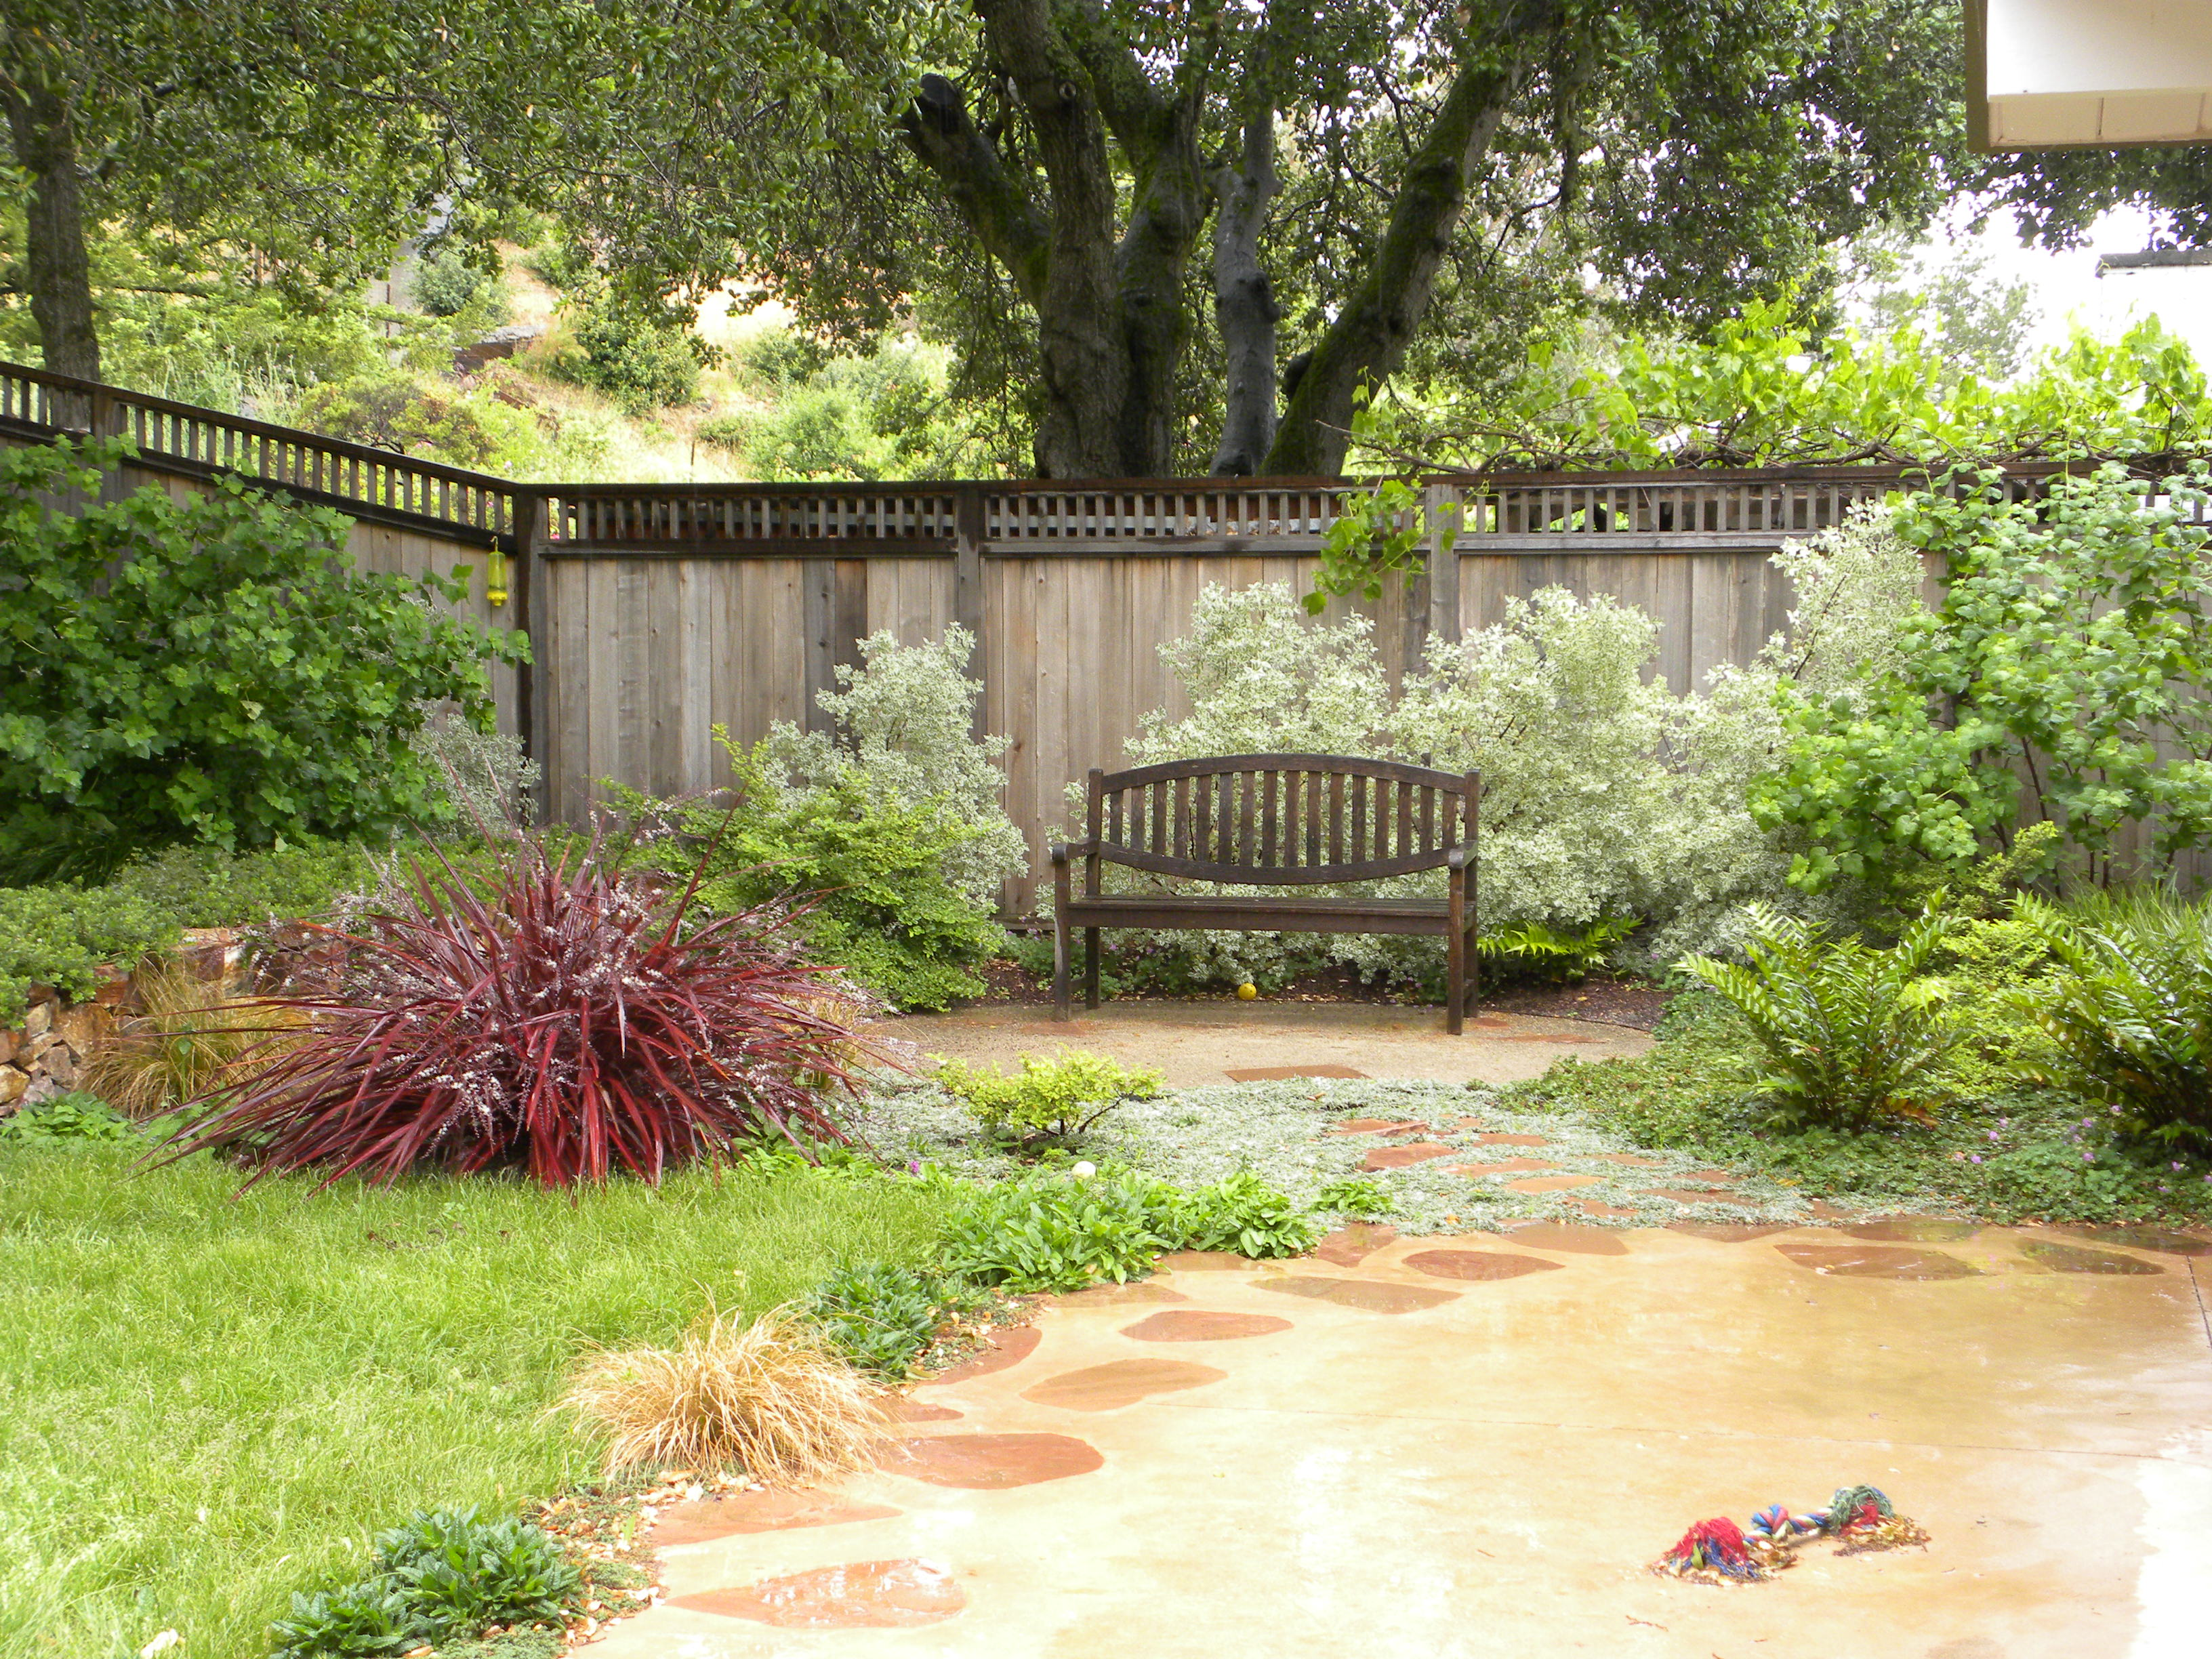 Clever Front Decomposed Granite Patios Human Footprint Decomposed Granite Patio Pros Cons Decomposed Granite Patio Designs Bench Sits On A Decomposed Granite Patio Which Transitioned From Concrete Pat houzz-03 Decomposed Granite Patio